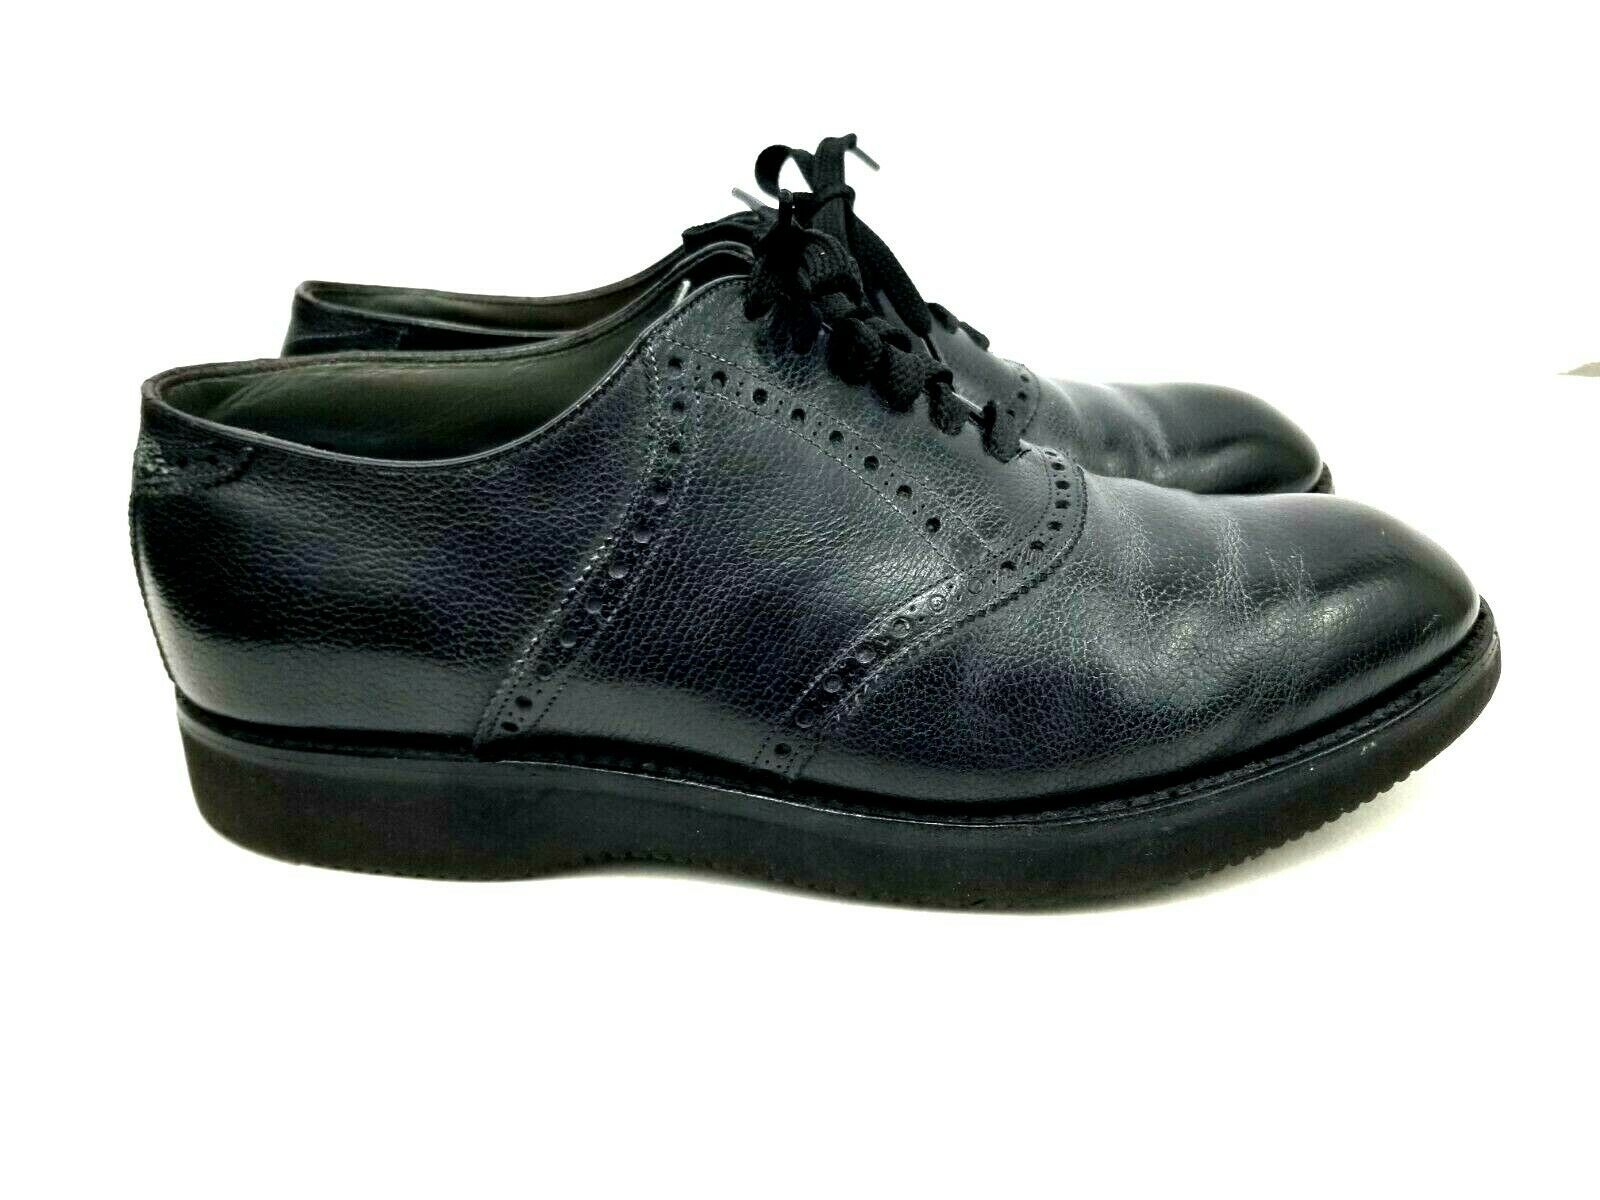 FootJoy Mens Oxford Shoes Size 11 EEE Dress-Walkers Black Leather Vibram Lace Up